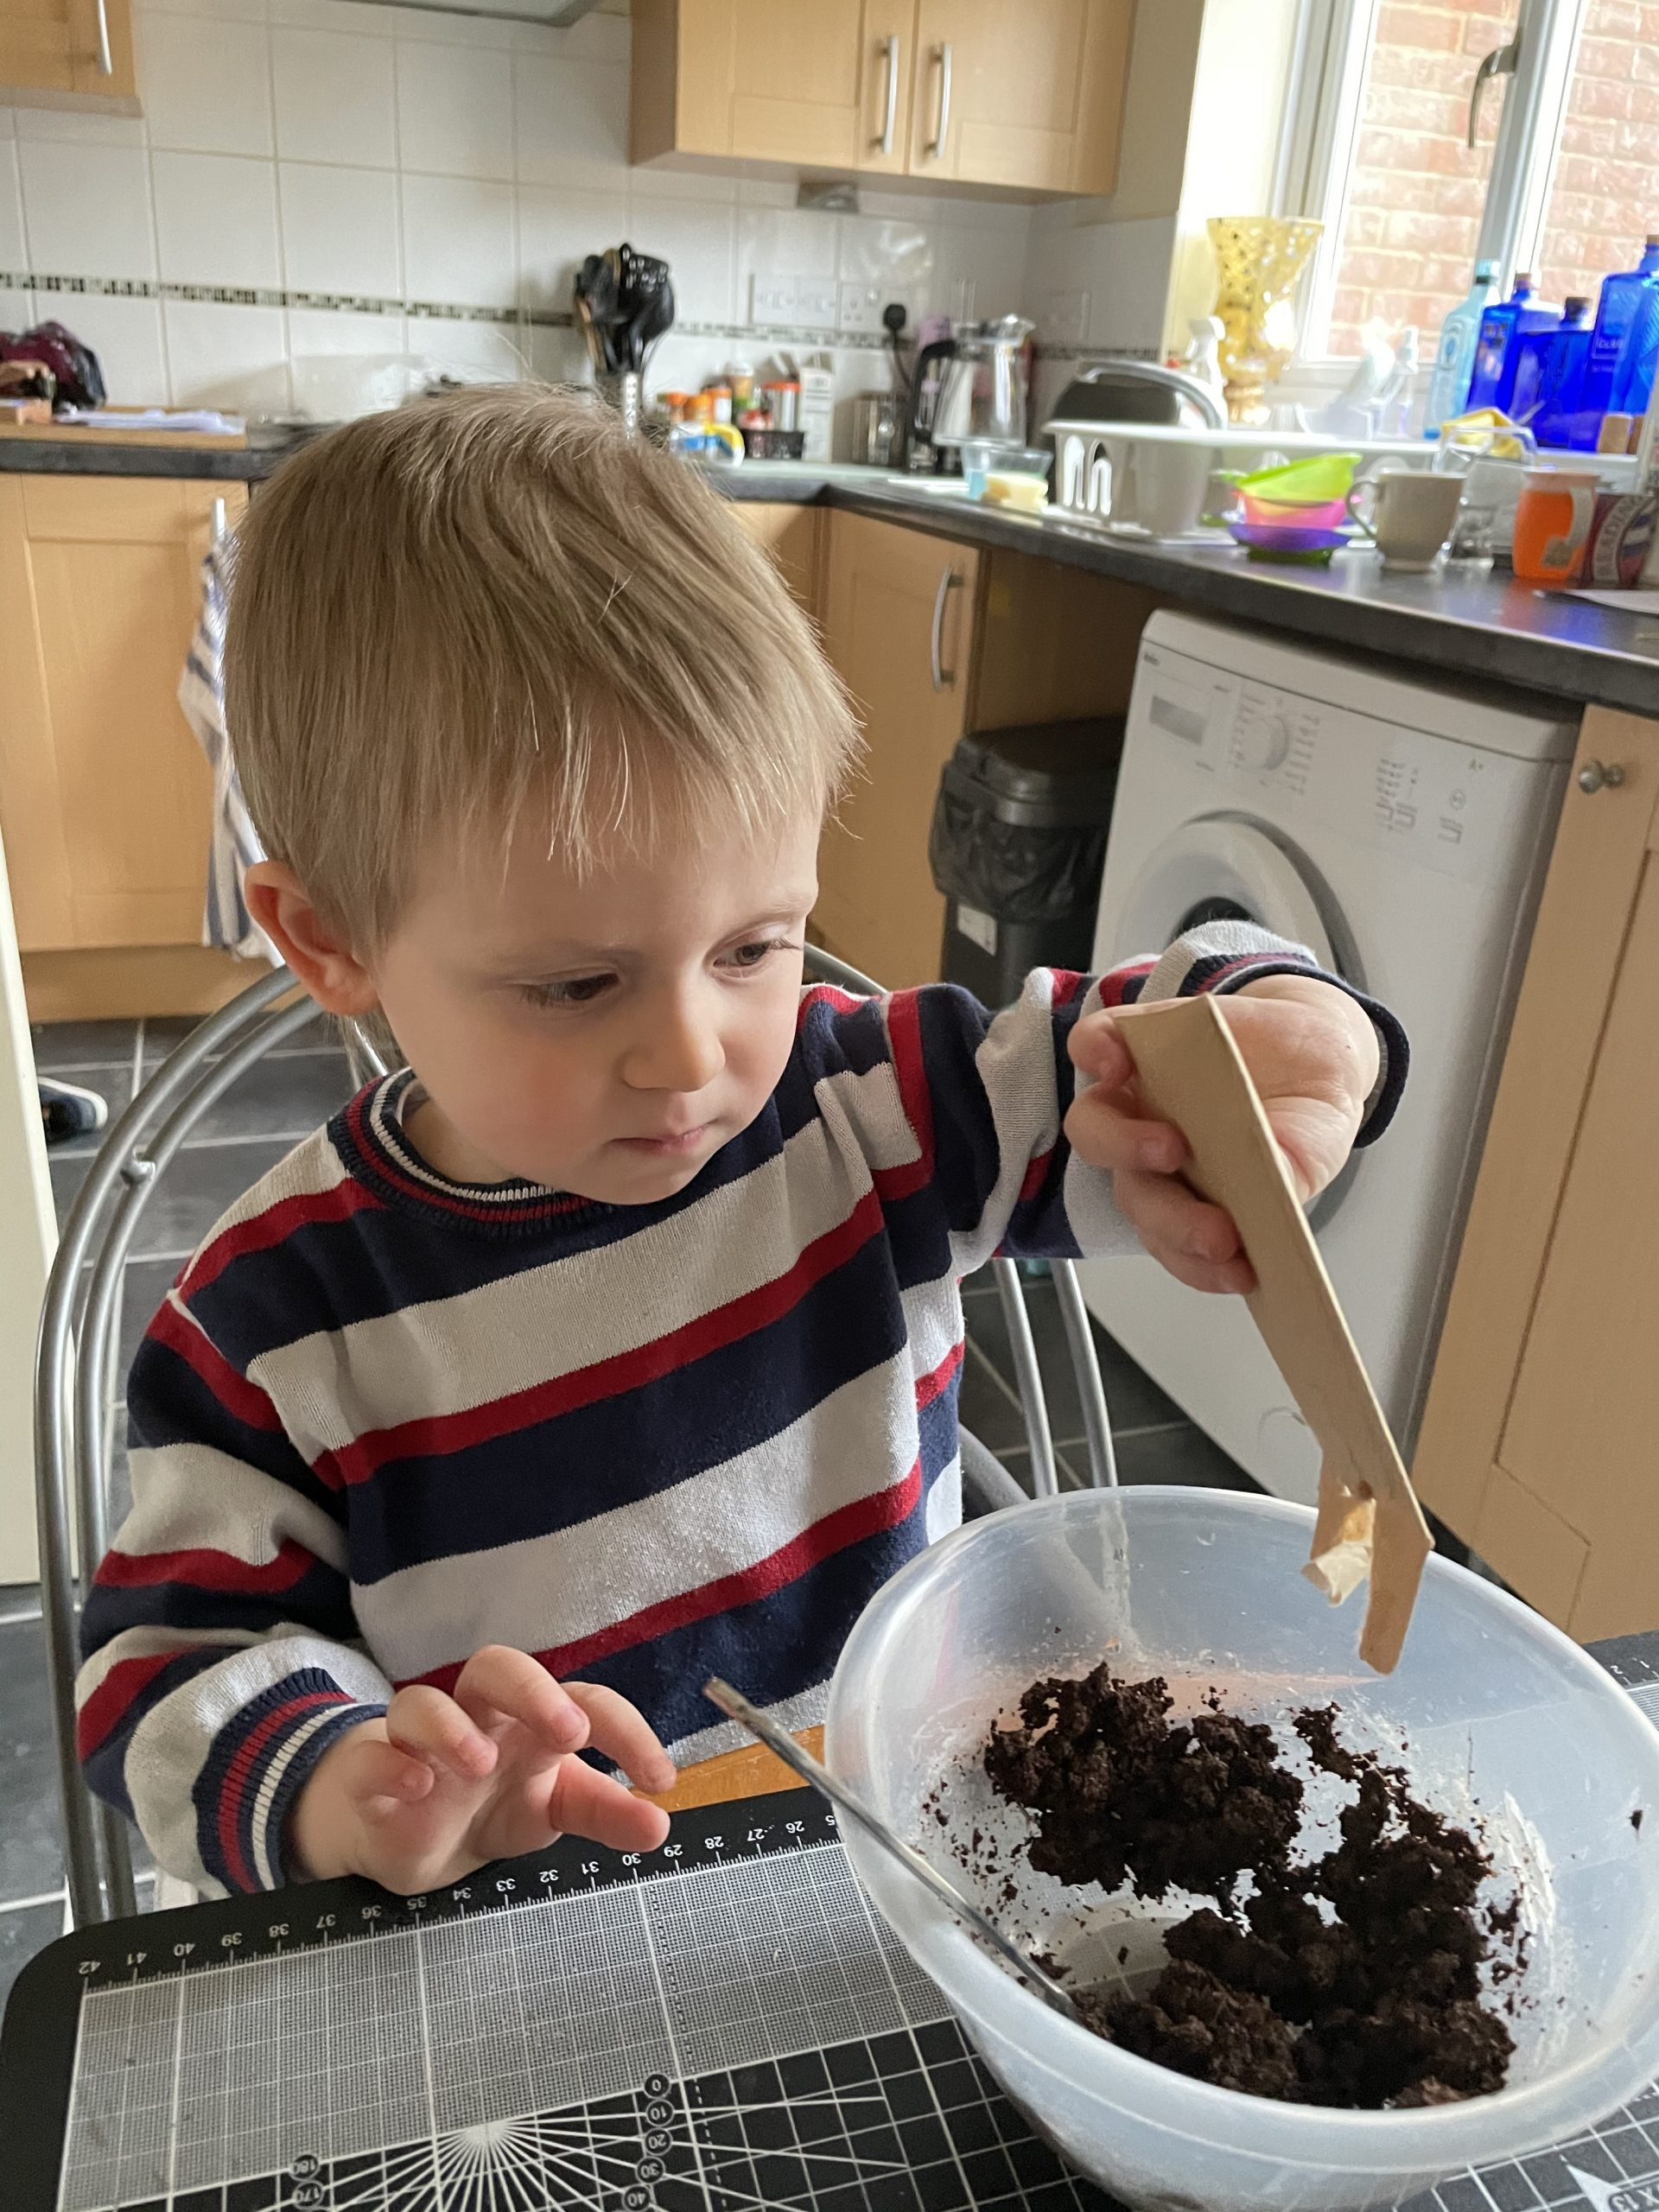 Little J is wearing a white, red and blue jumper. He is sat at a table with a bowl in front of him. There is compost and clay in the bowl and he is adding wildflower seeds from a small brown packet